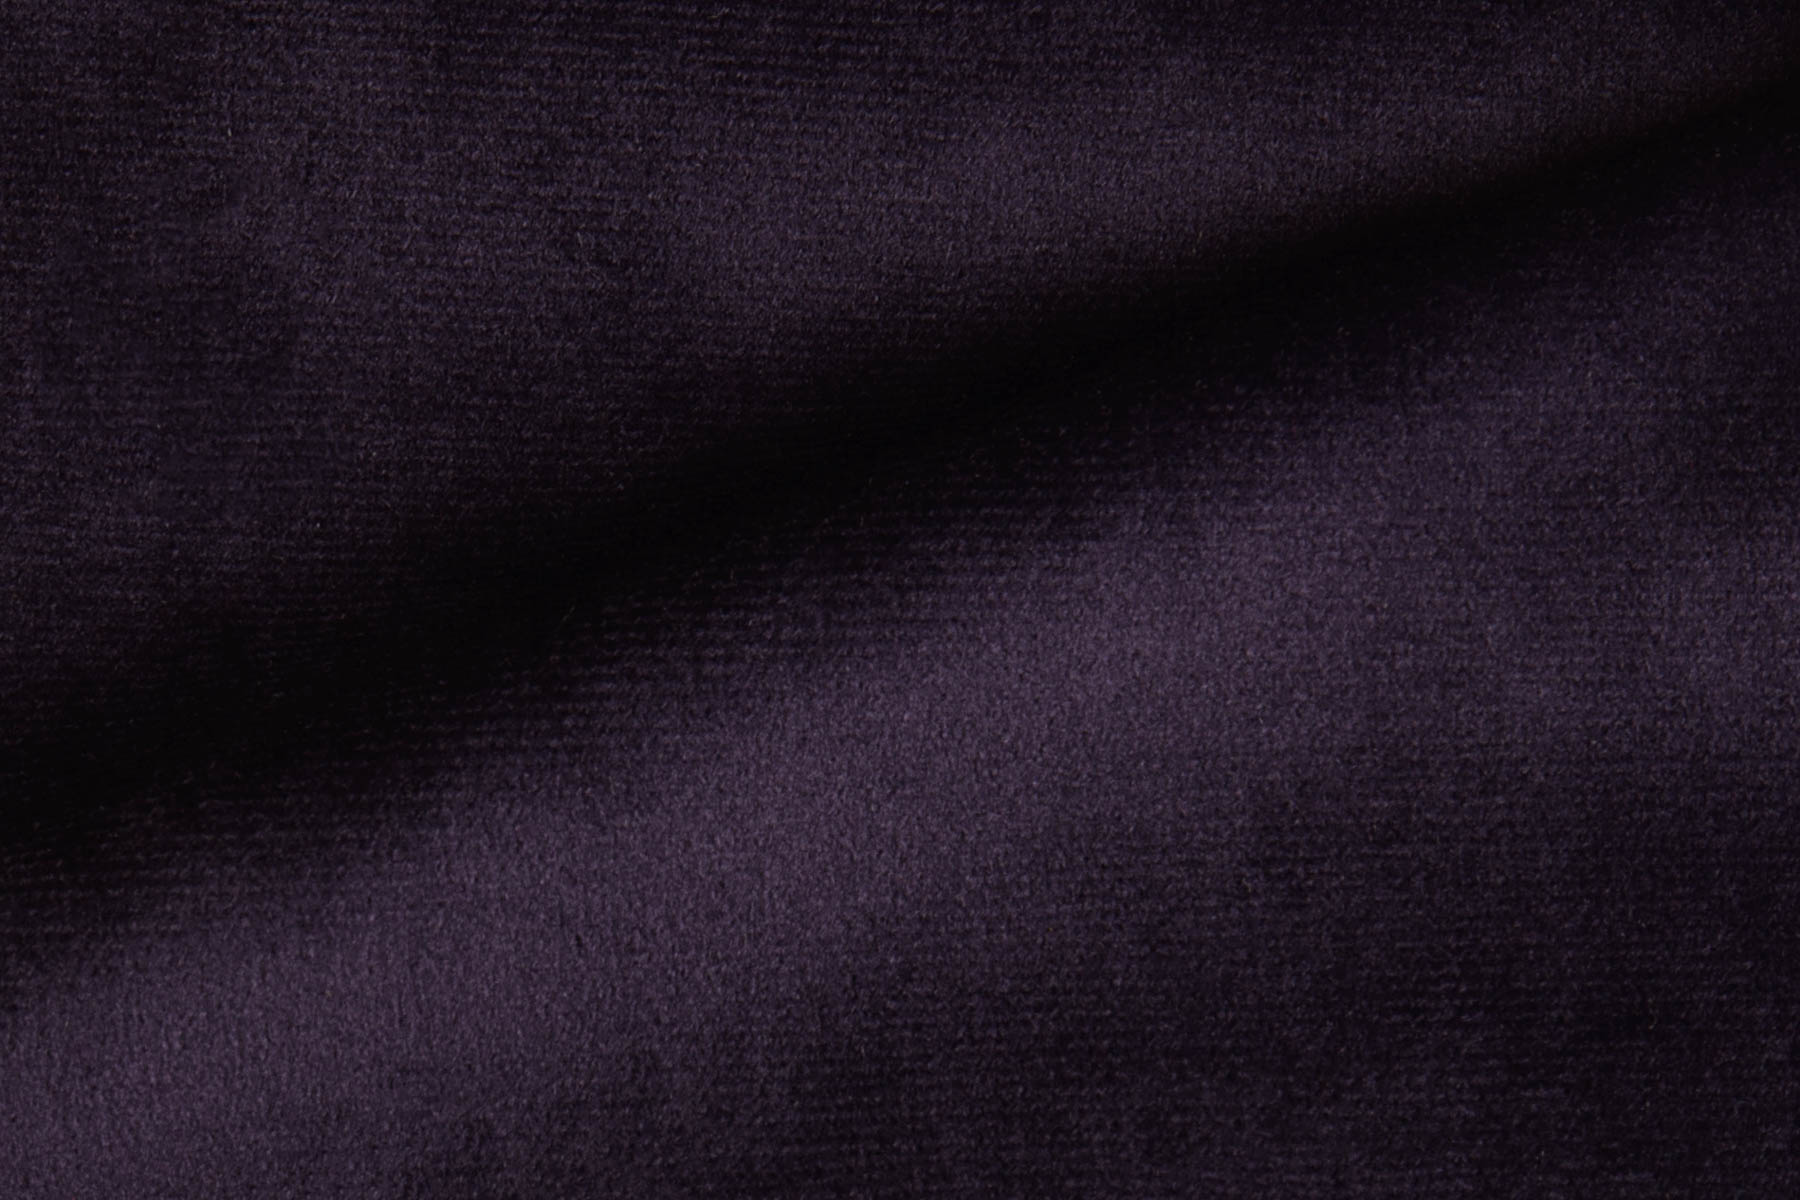 RADIANCE VELVET DEEP PURPLE Fabric by KOKET